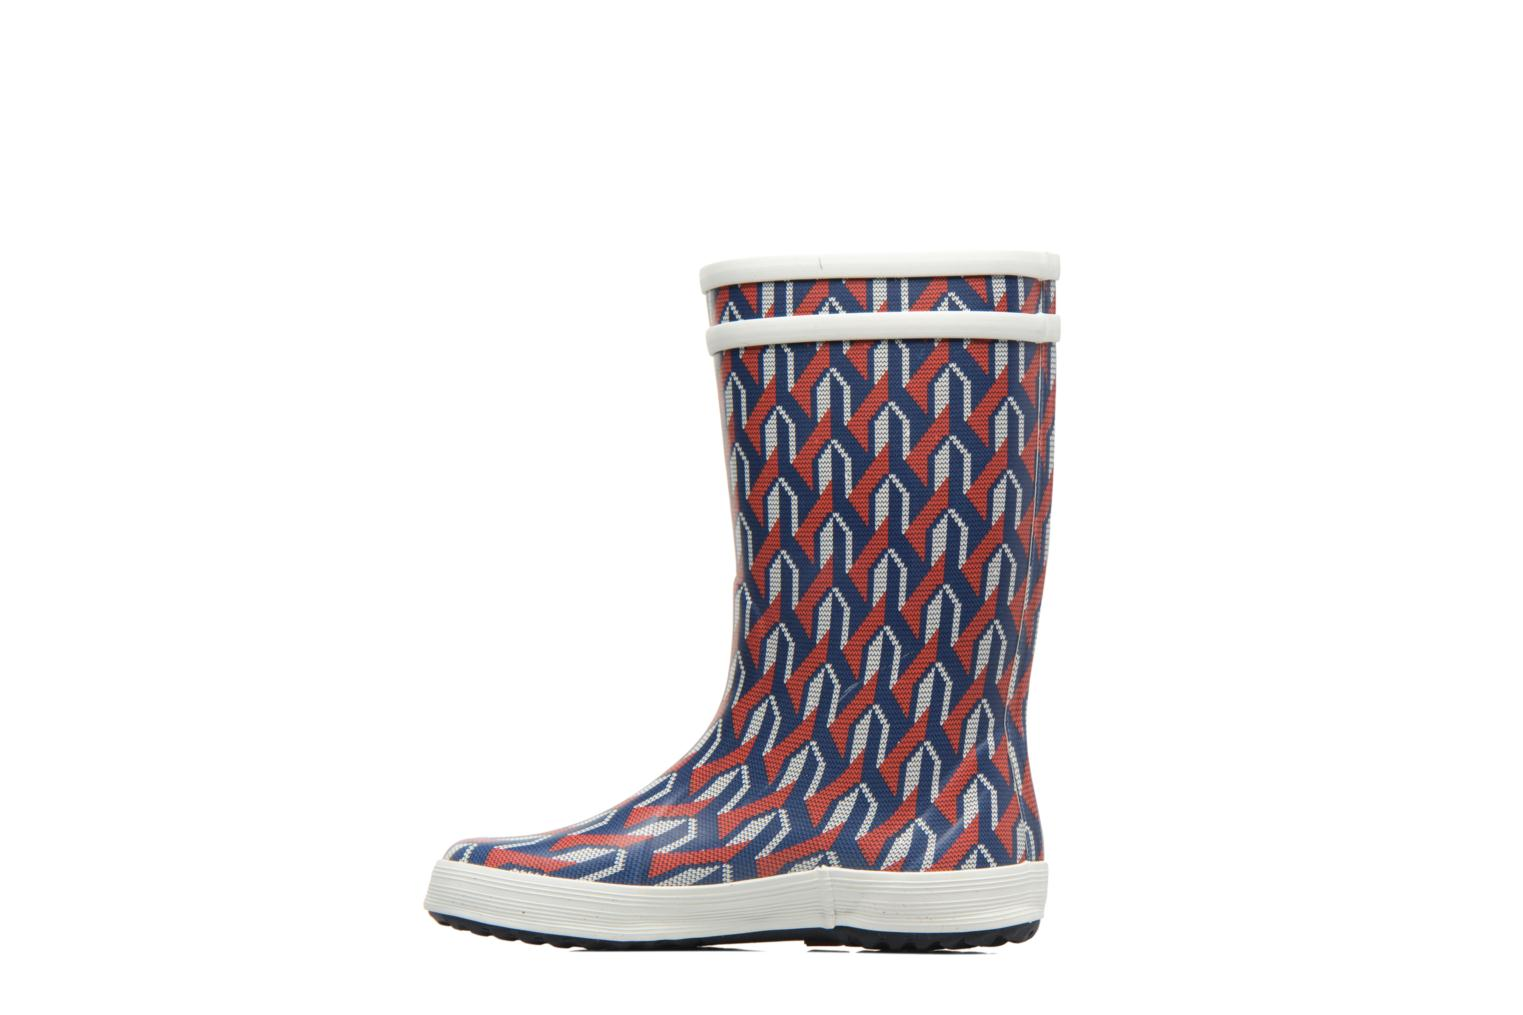 Bottes Aigle Lolly Pop AIGLE x SARENZA Multicolore vue face